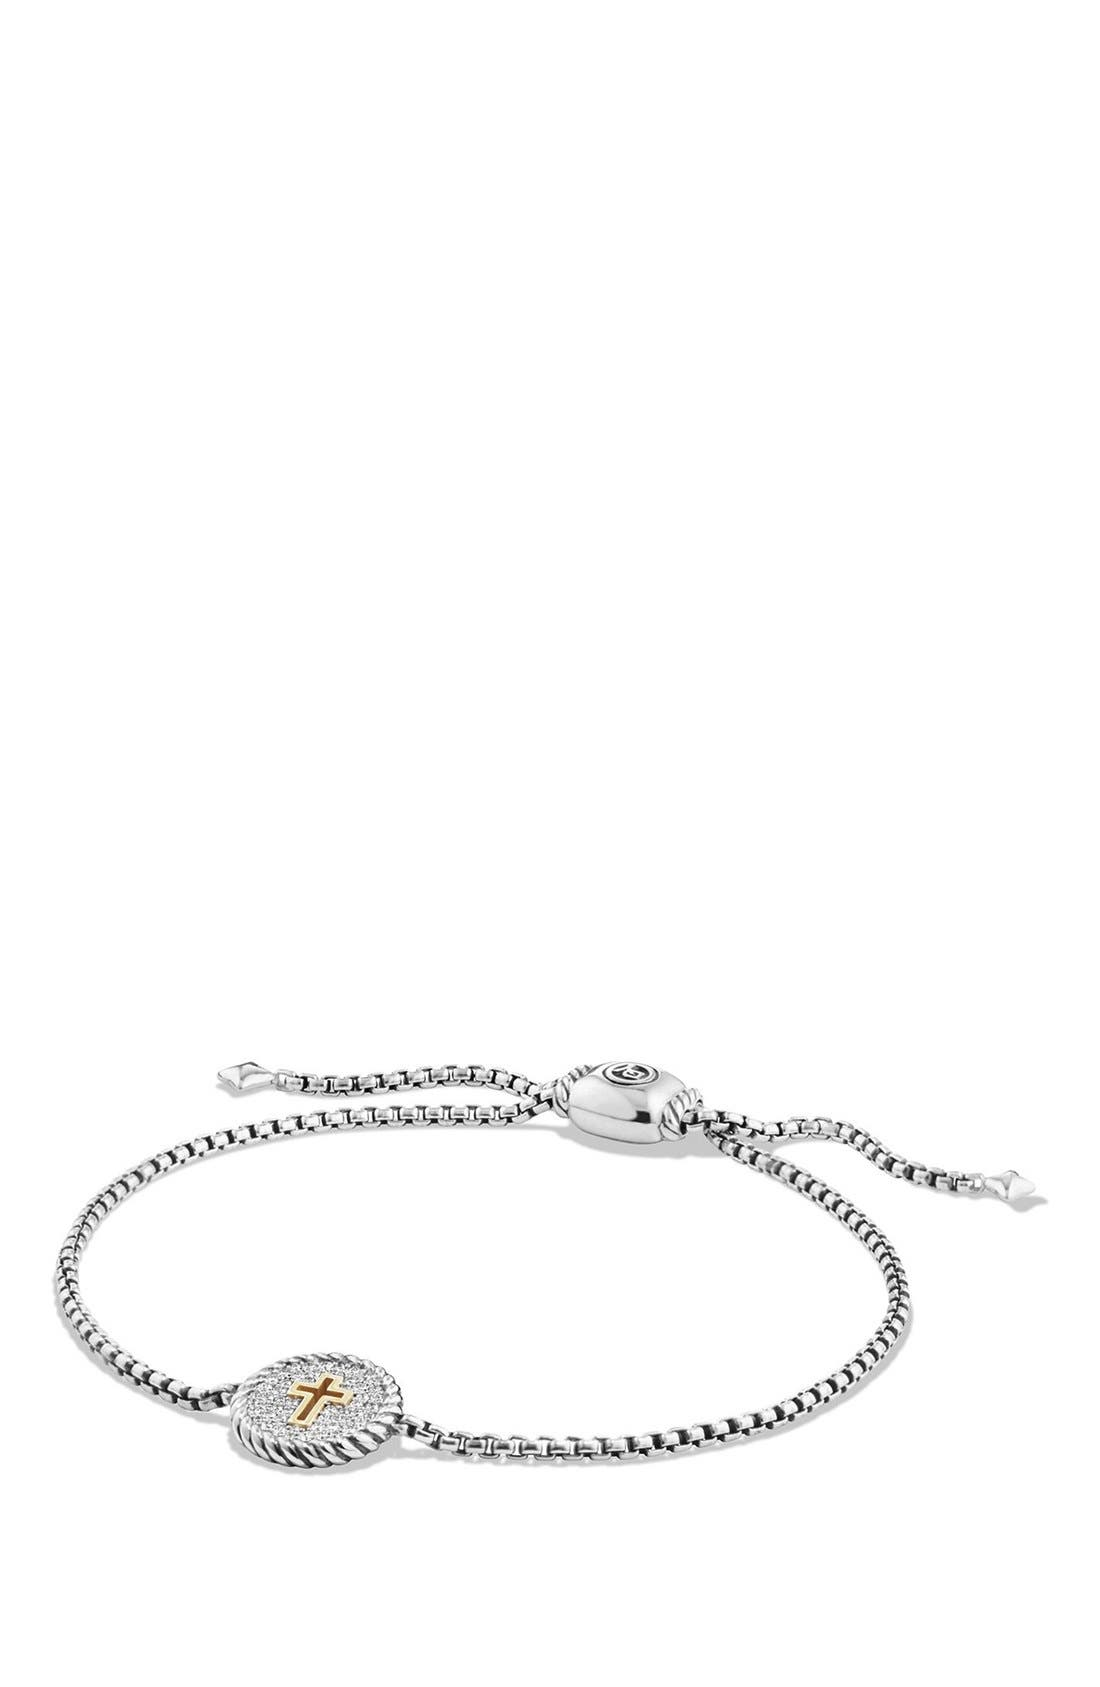 Main Image - David Yurman 'Cable Collectibles' Cross Charm Bracelet with Diamonds